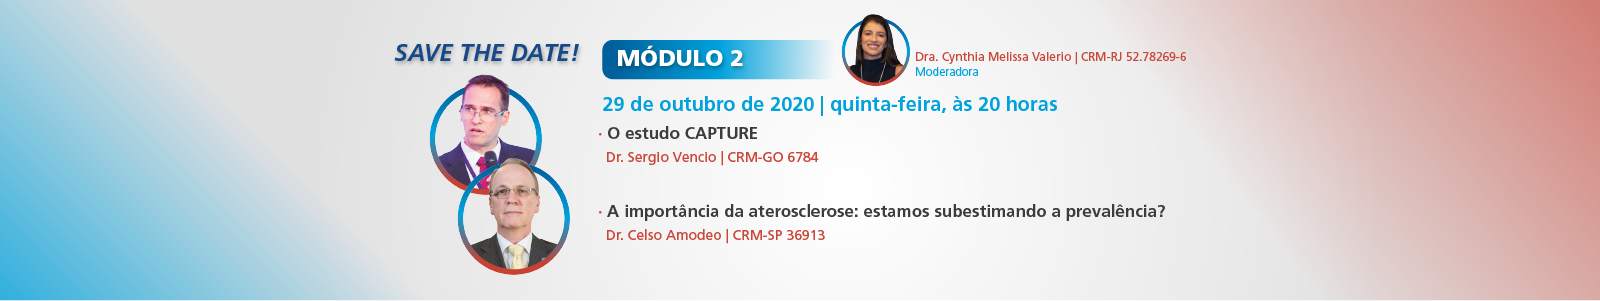 DC web-banners-Mód 2 save the date